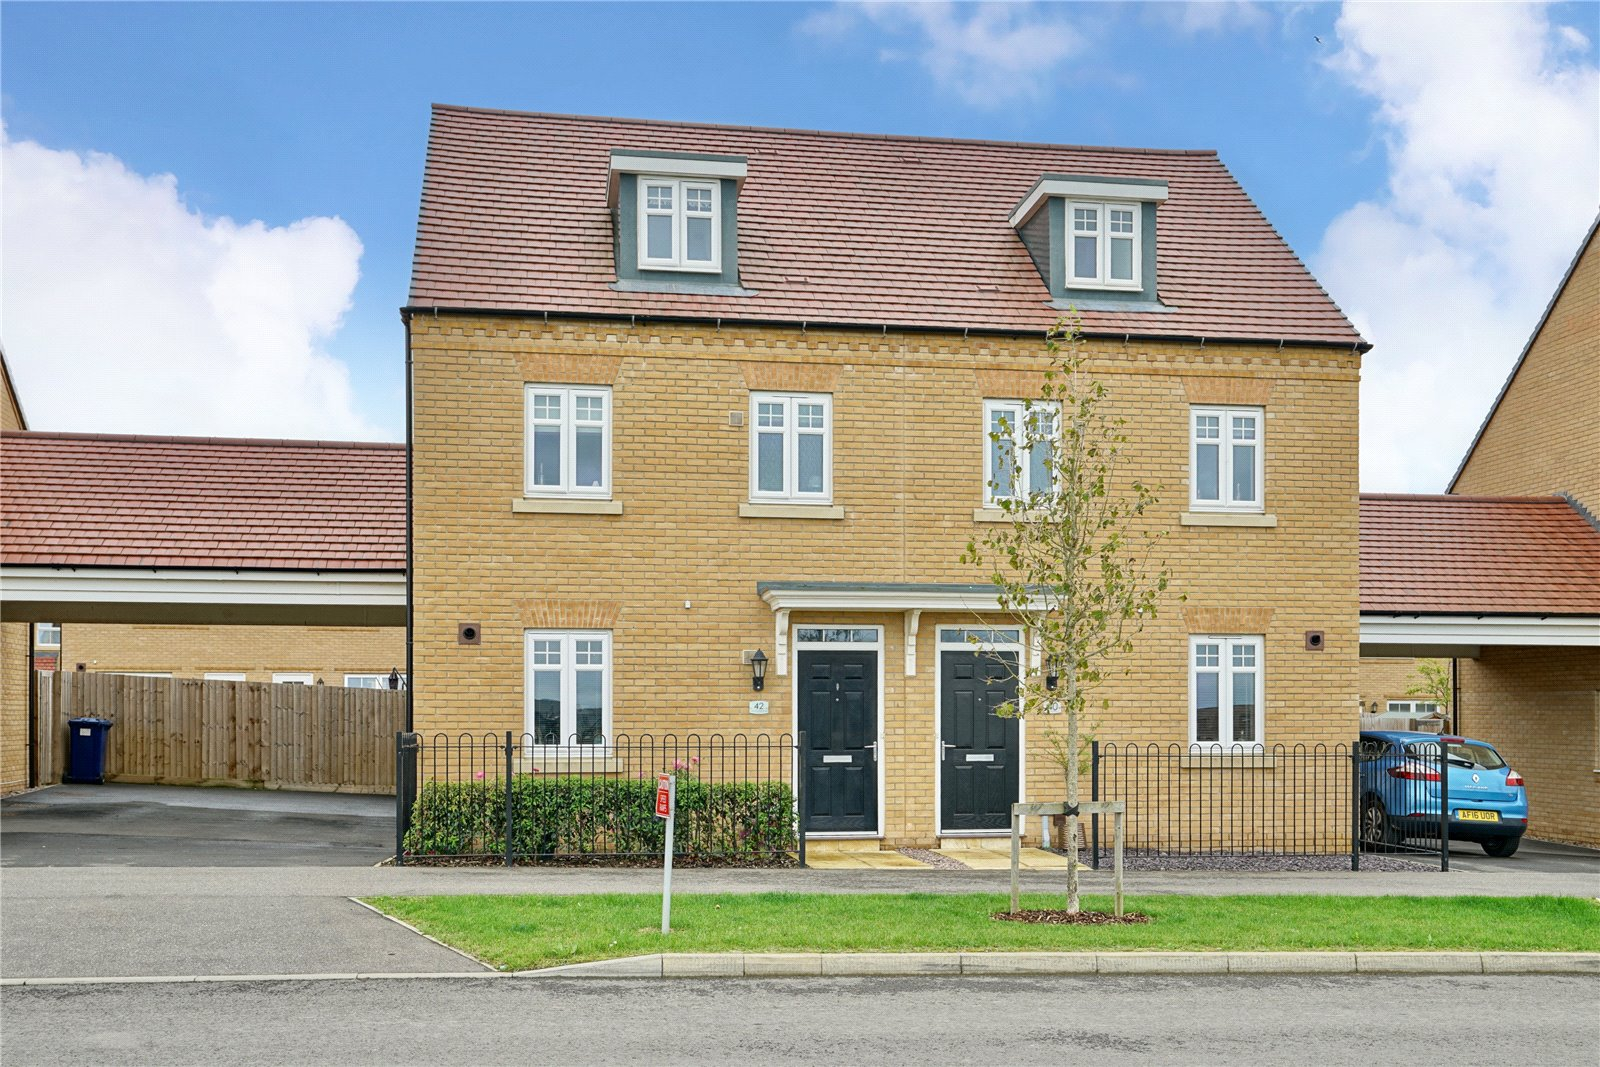 3 bed house for sale in Godmanchester, PE29 2ND - Property Image 1